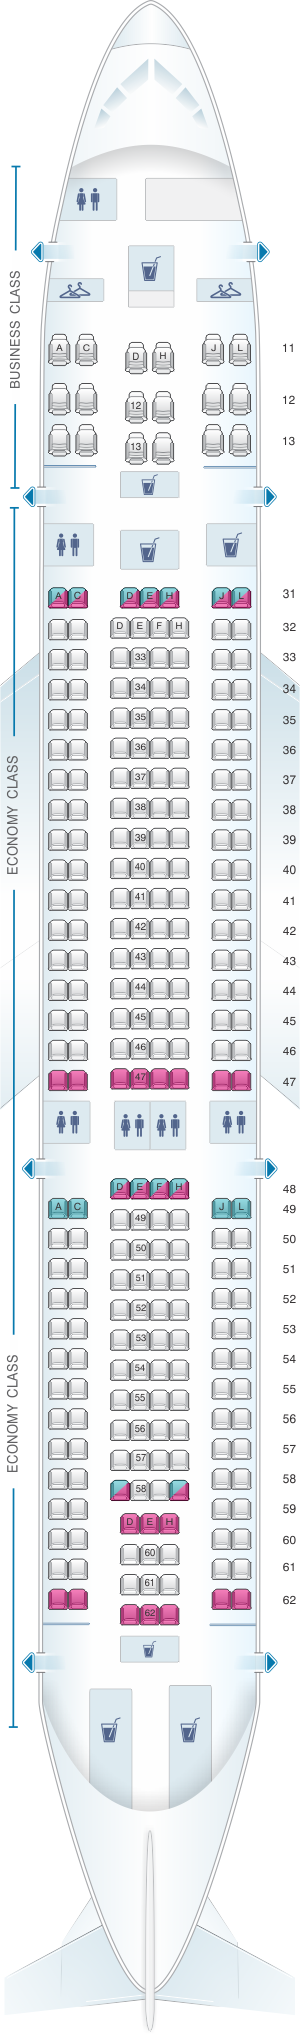 Seat map for Air China Airbus A330 200 (265PAX)